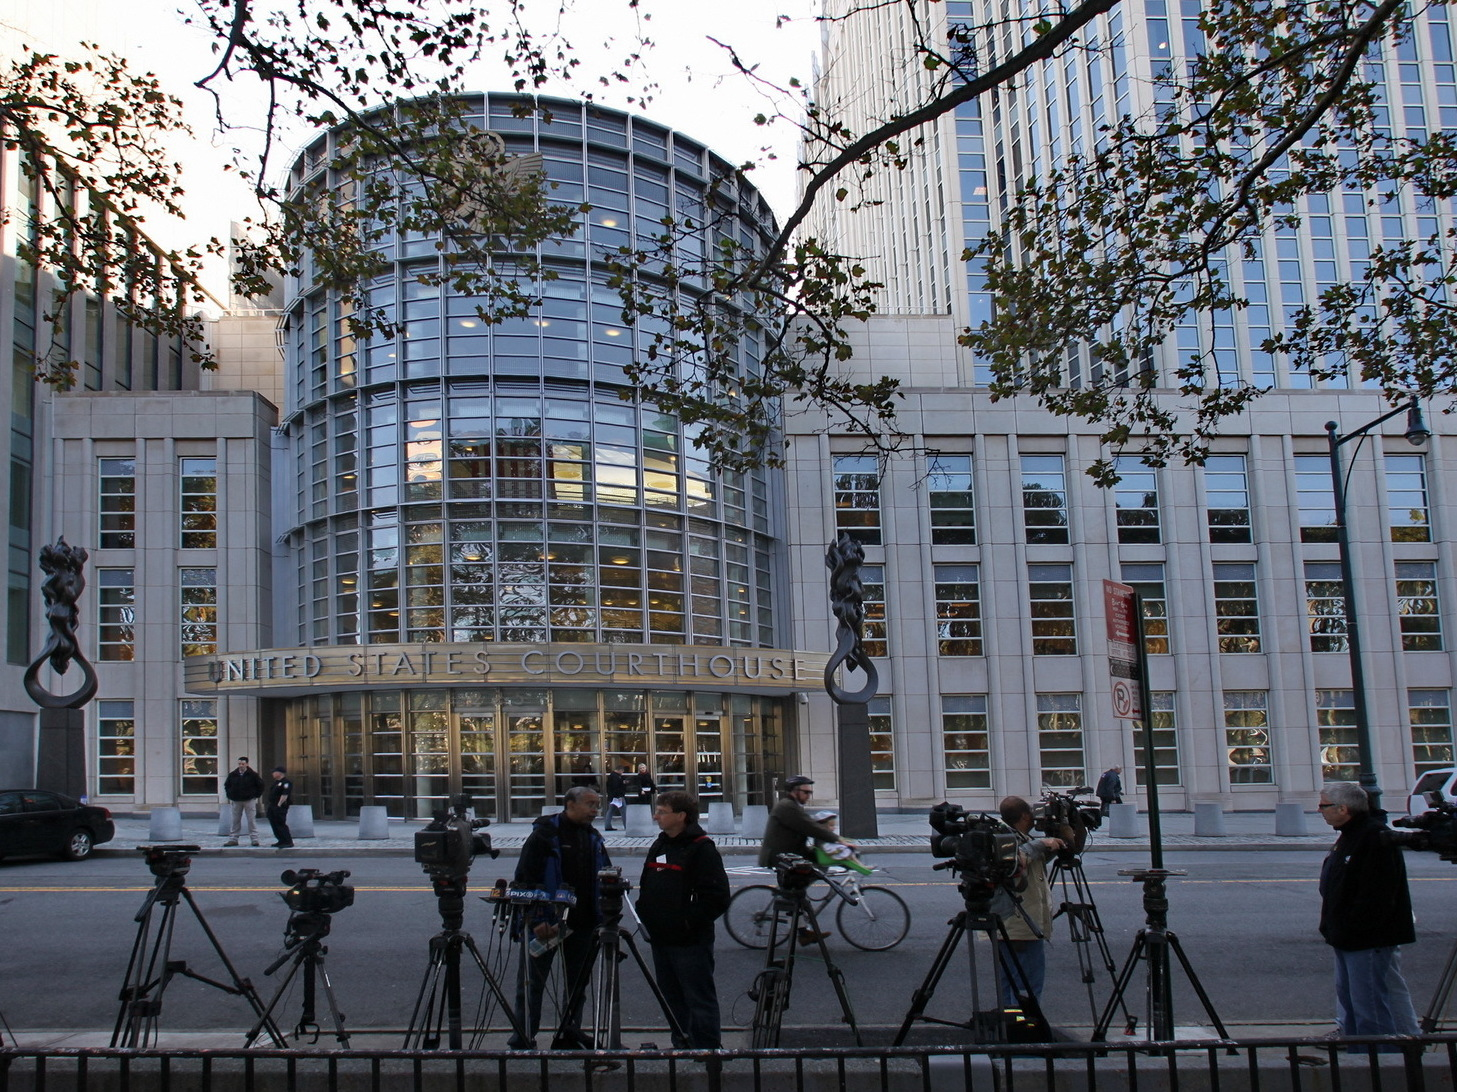 The United States Courthouse in Brooklyn, N.Y. An American terror suspect was scheduled to appear there after prosecutors charged him with being a sniper for the Islamic State.